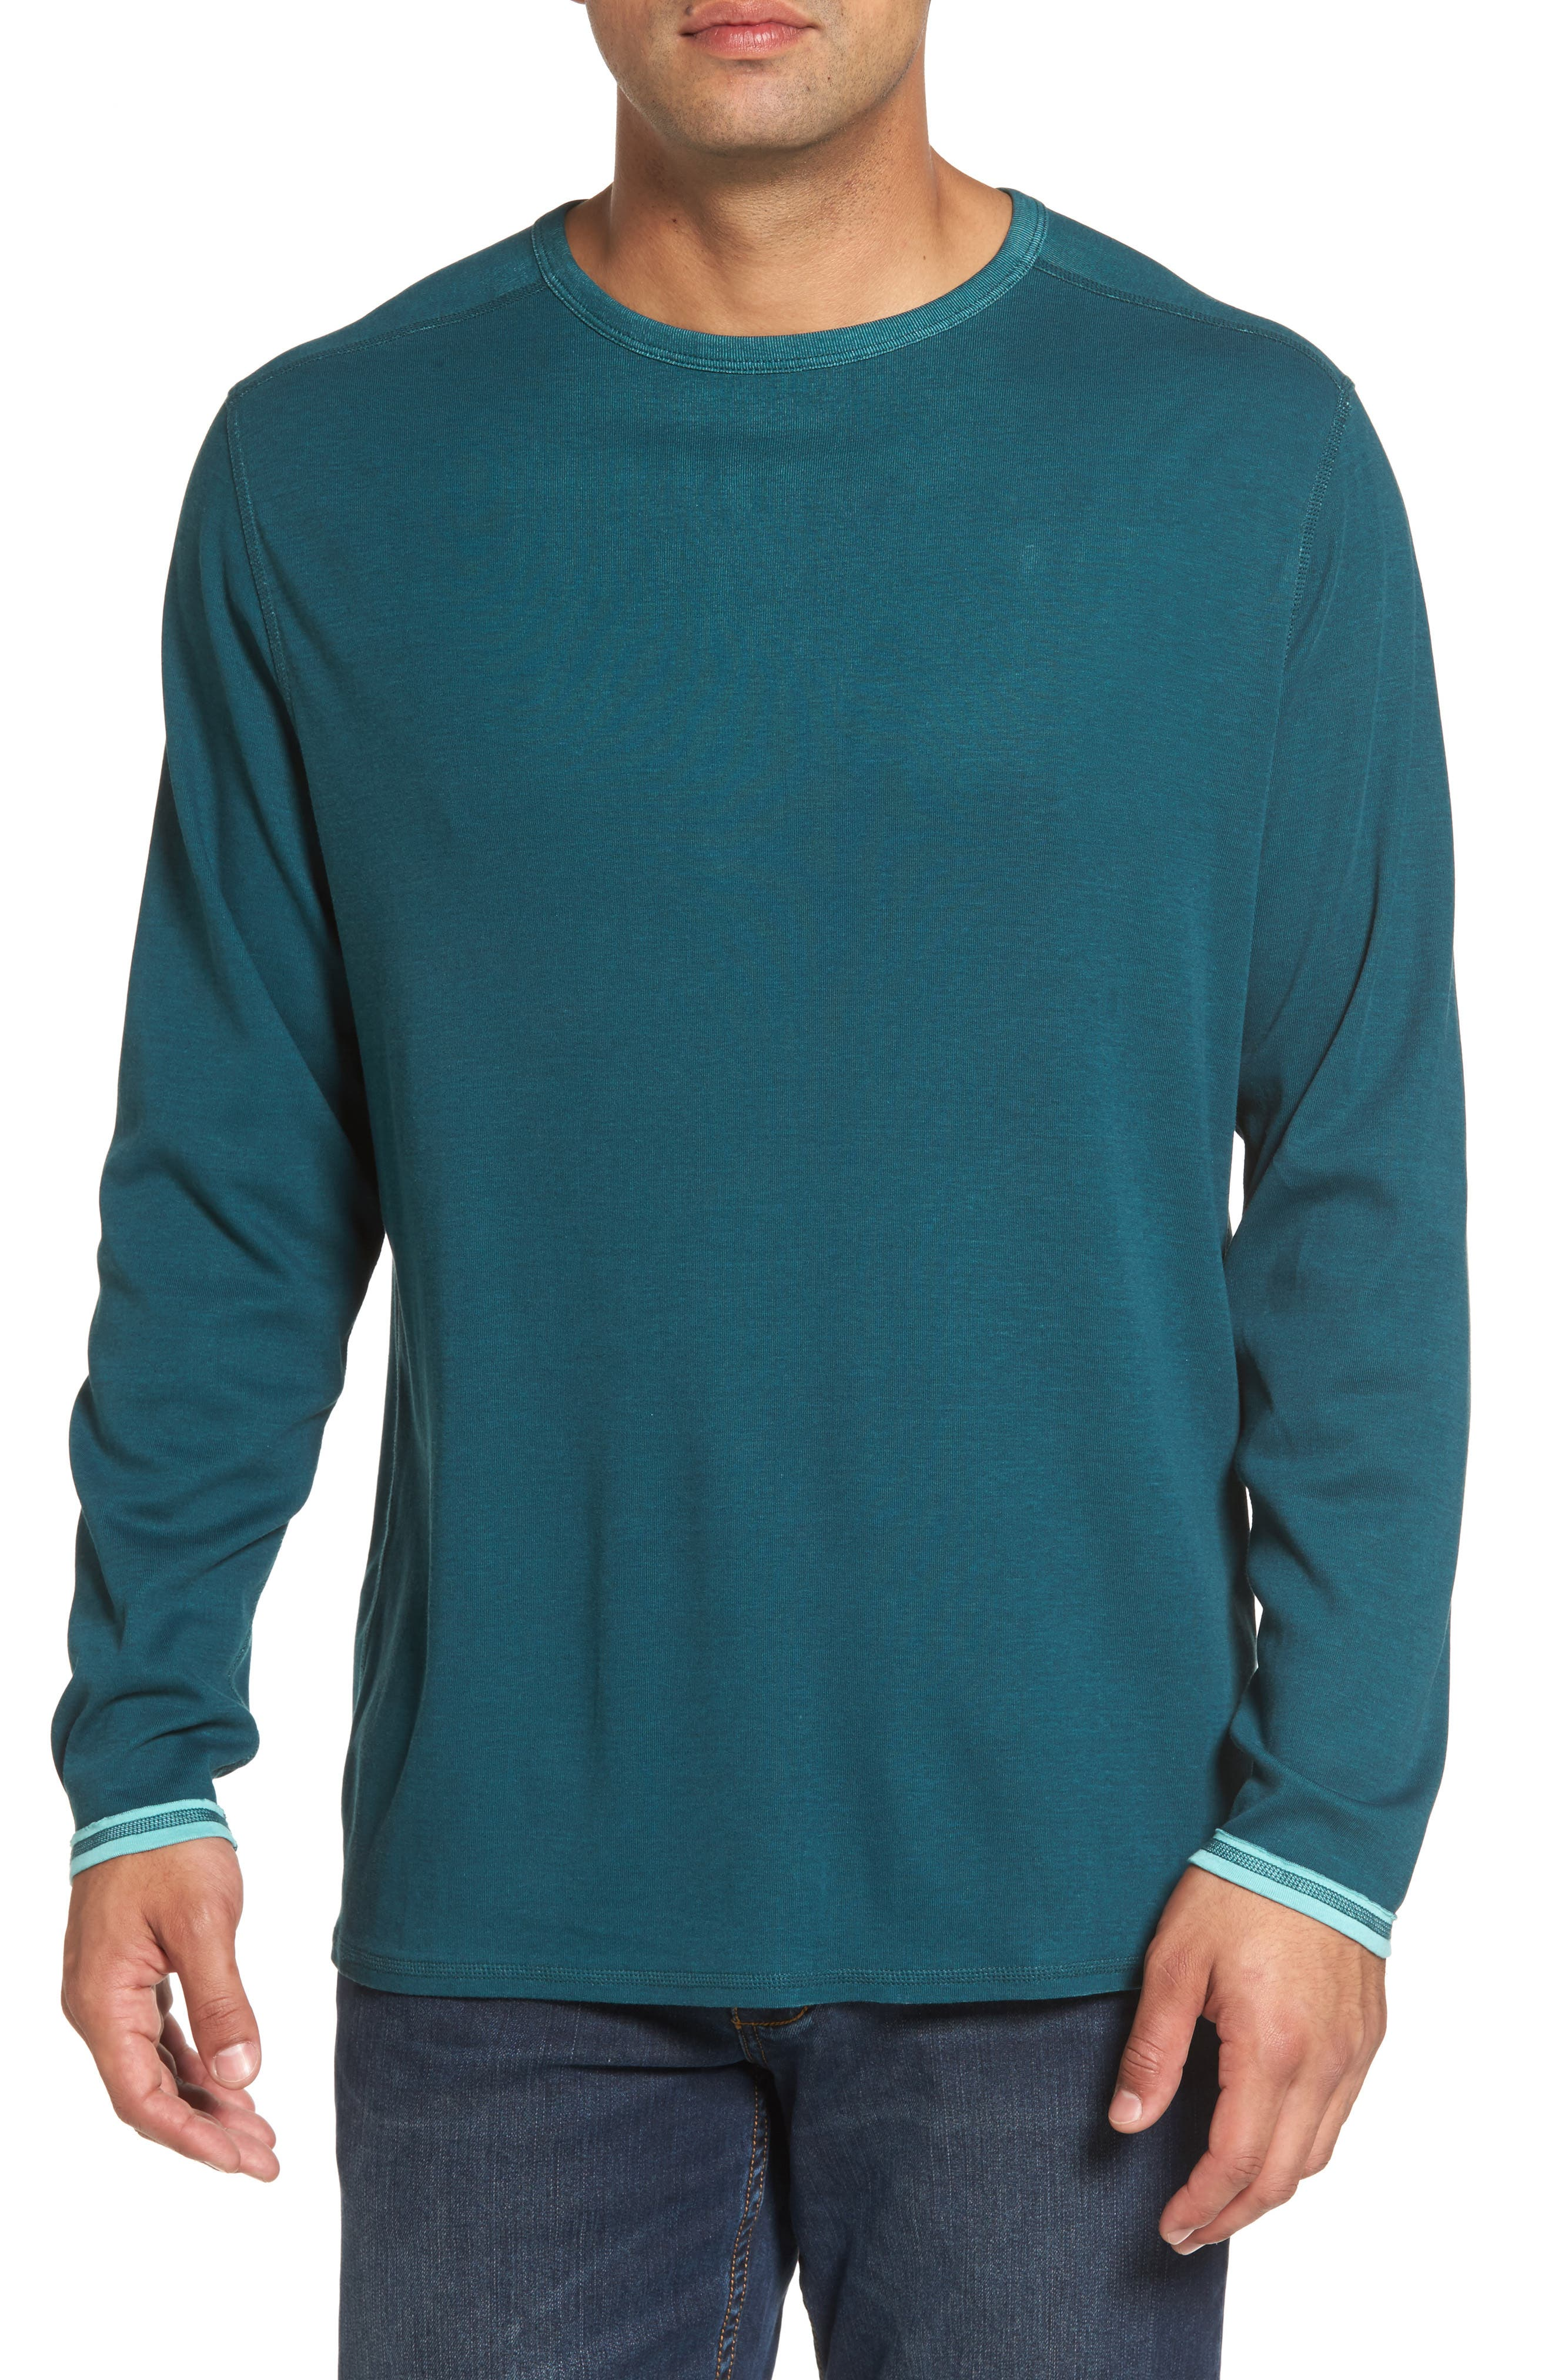 Alternate Image 1 Selected - Tommy Bahama Dual in the Sun Reversible T-Shirt